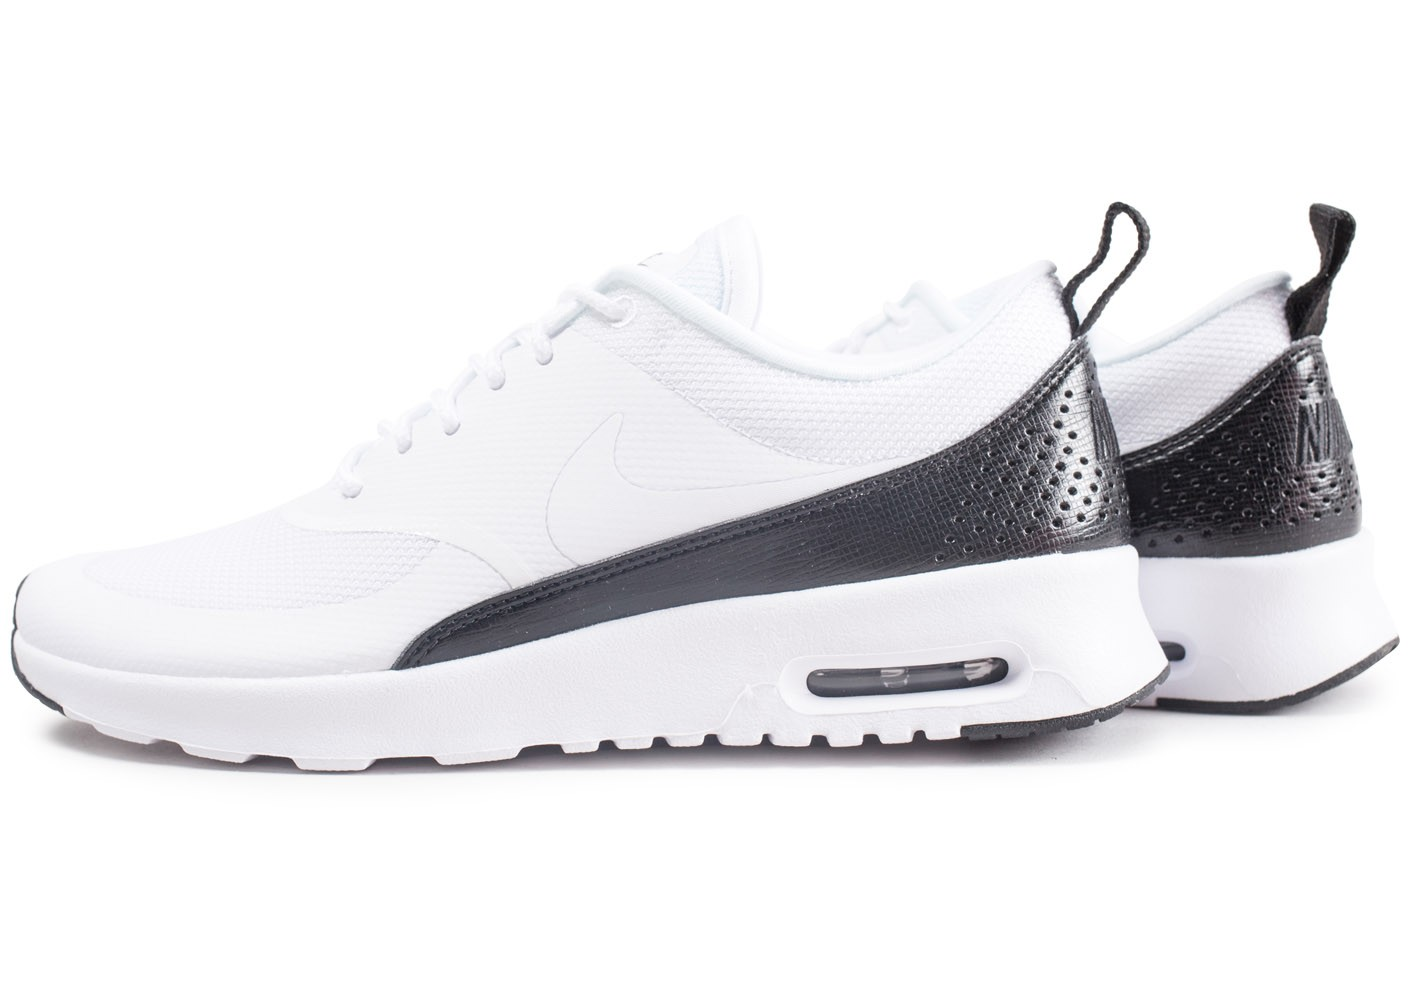 Nike Air Max Thea blanche et noire Chaussures Baskets